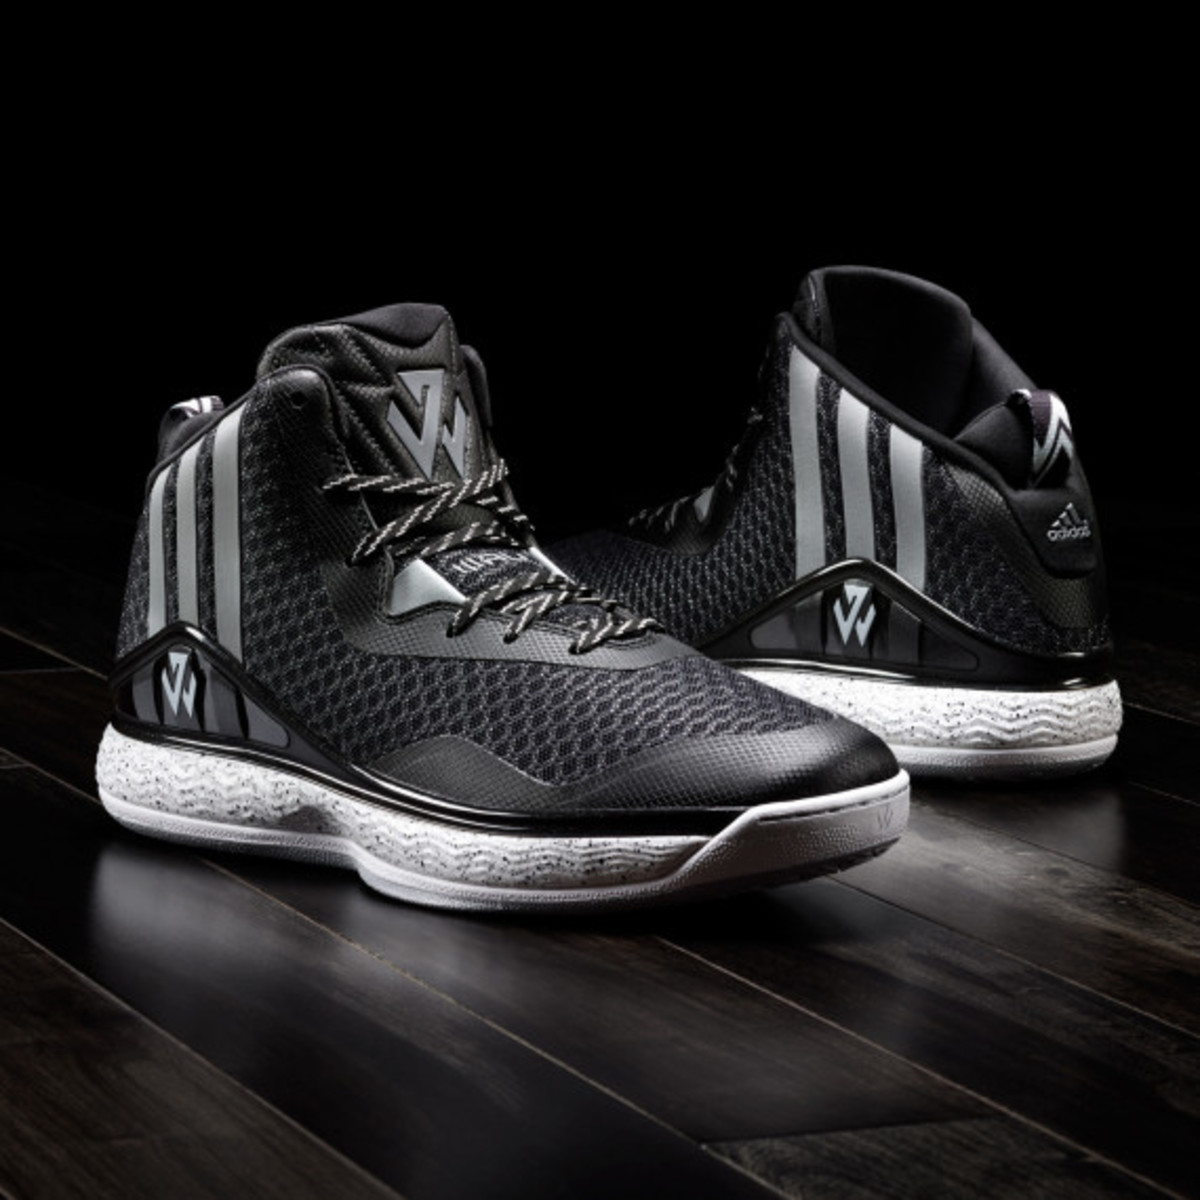 adidas-j-wall-1-signature-basketball-shoe-08